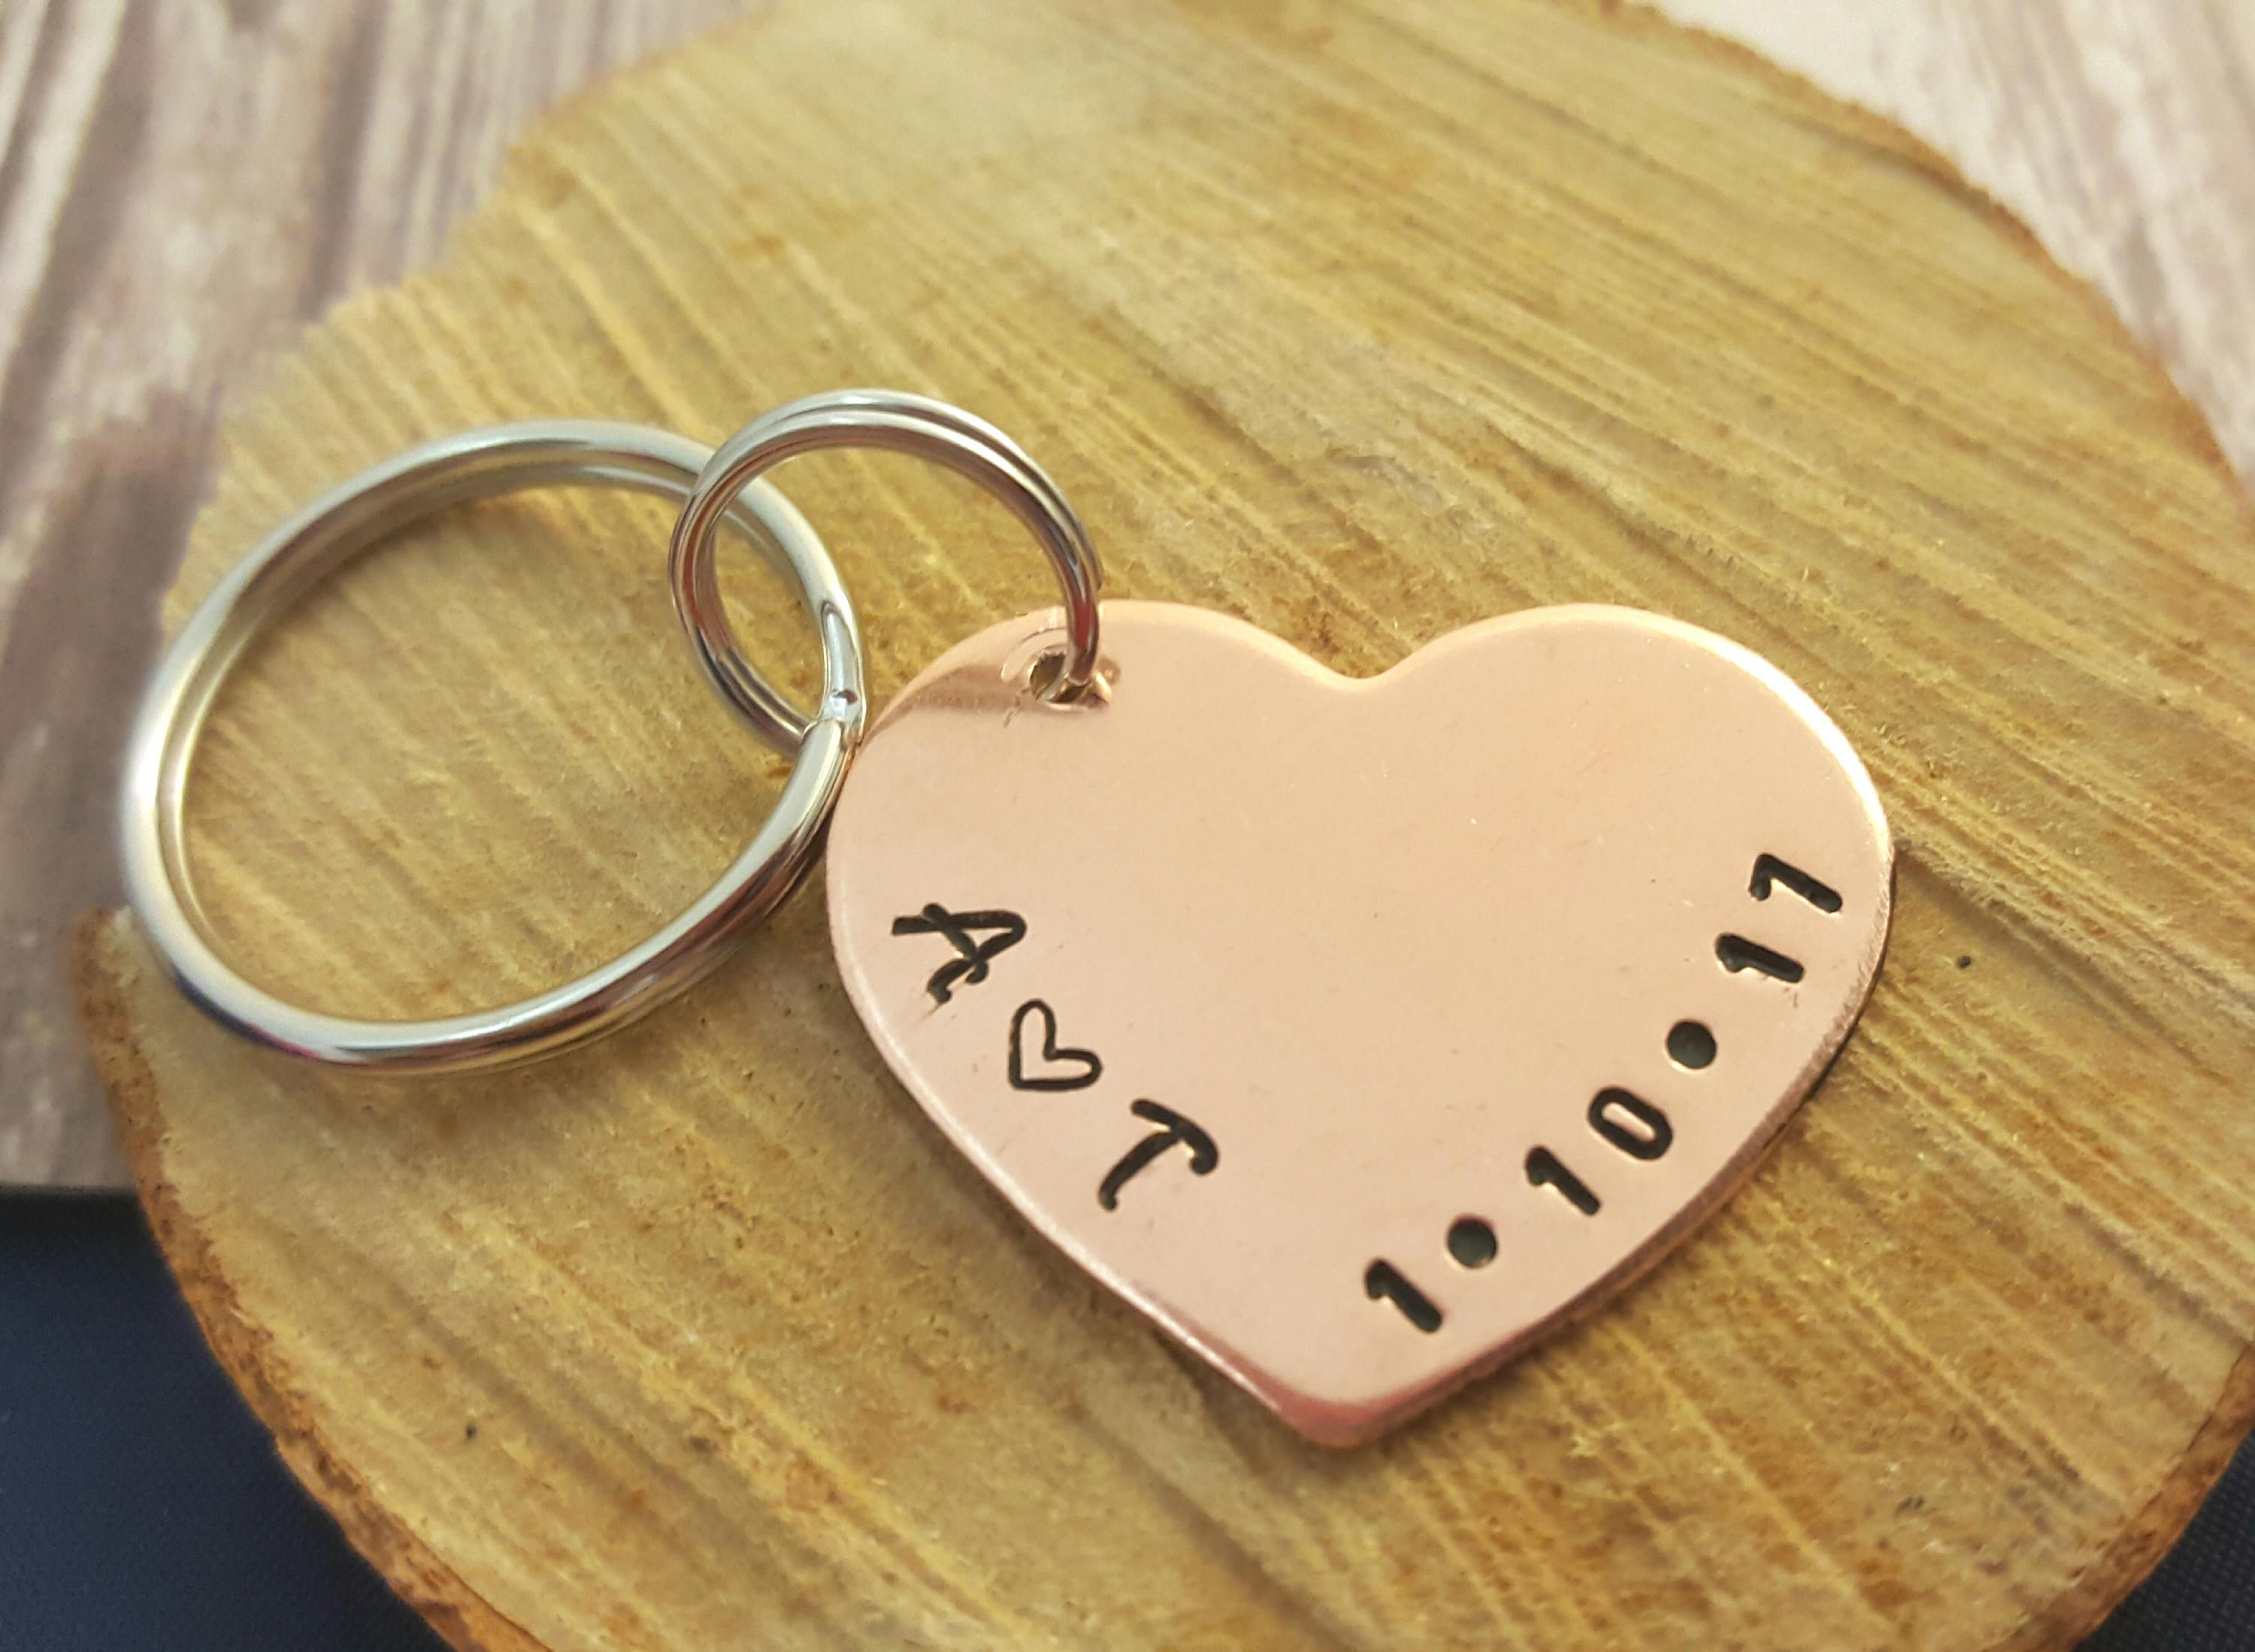 Personalized anniversary keychain 7th anniversary gift heart personalized anniversary keychain 7th anniversary gift heart keychain anniversary gift for wife negle Gallery